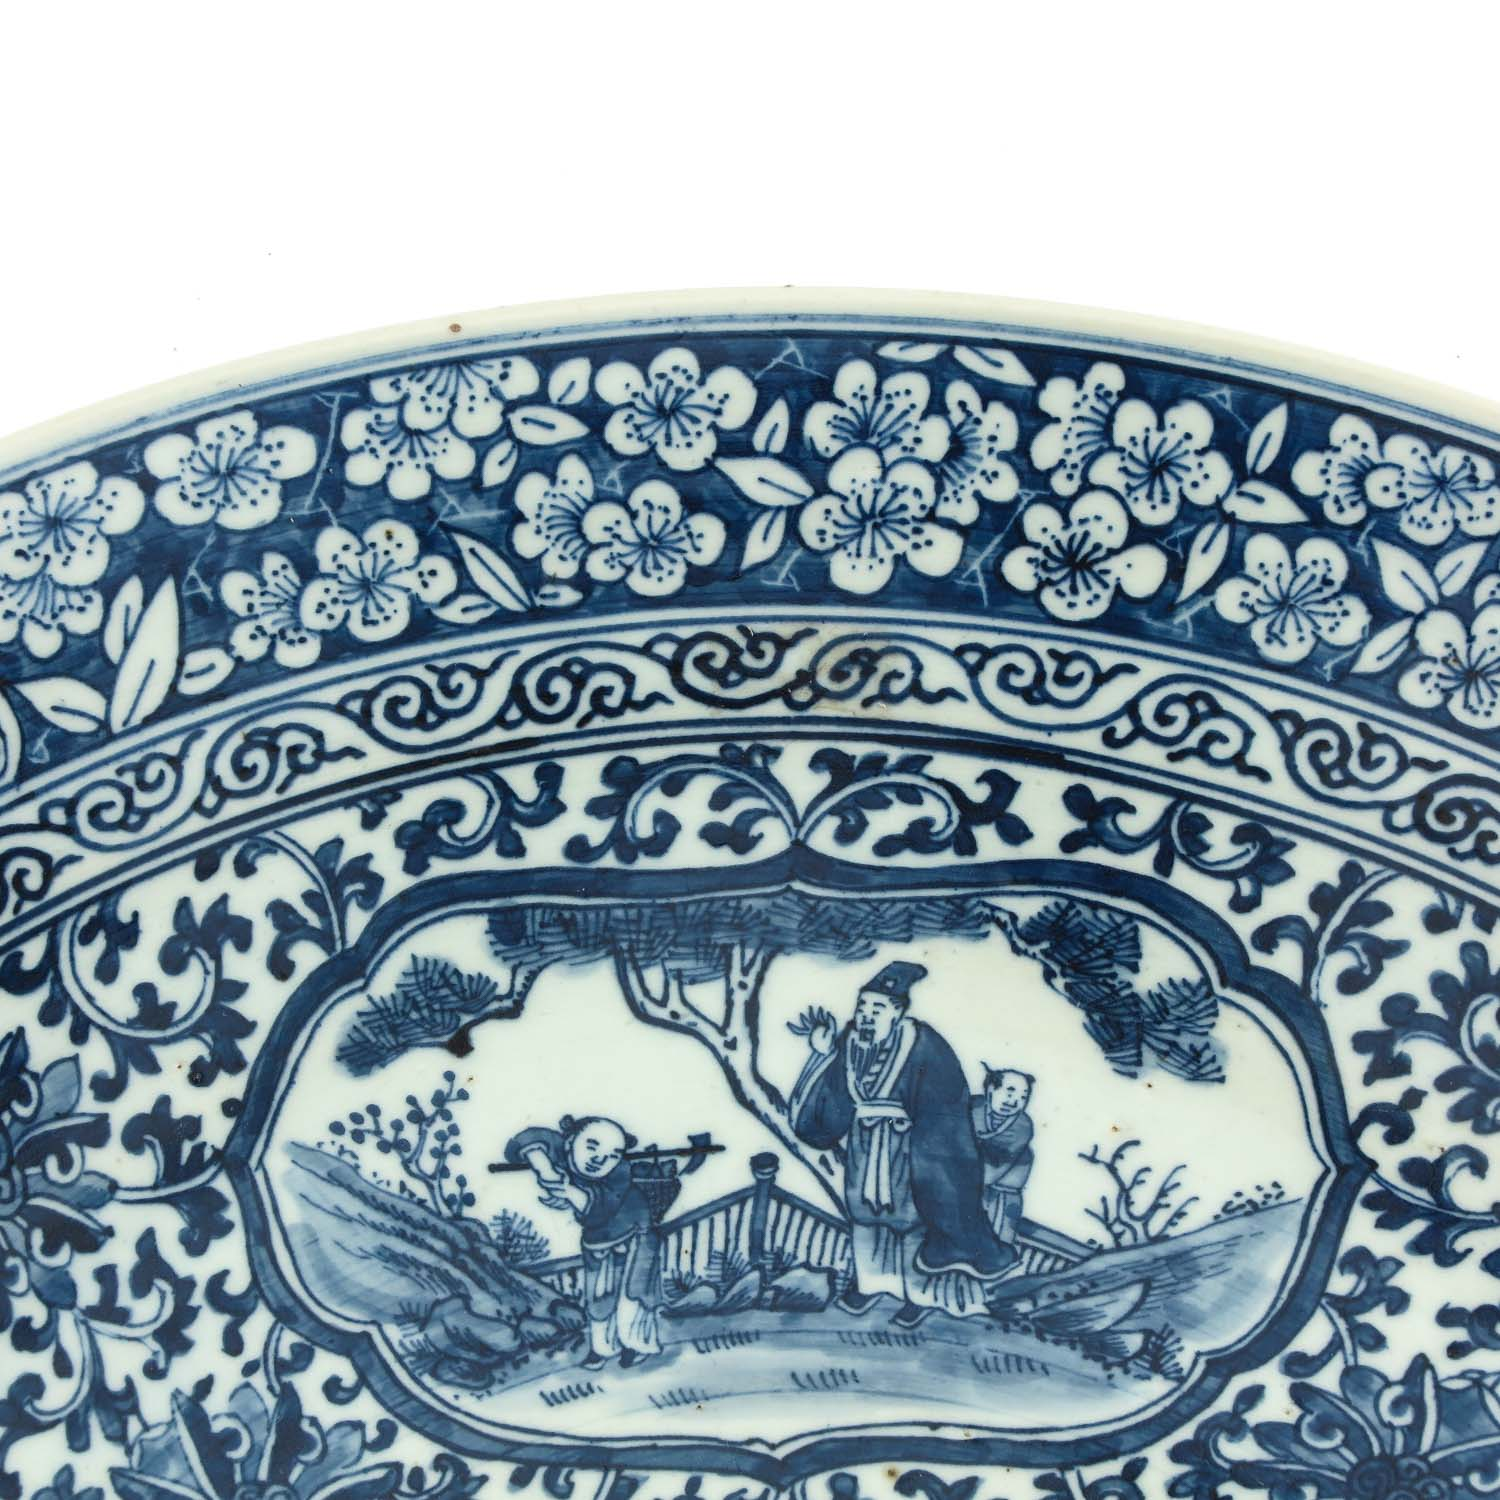 A Large Blue and White Charger - Image 3 of 7